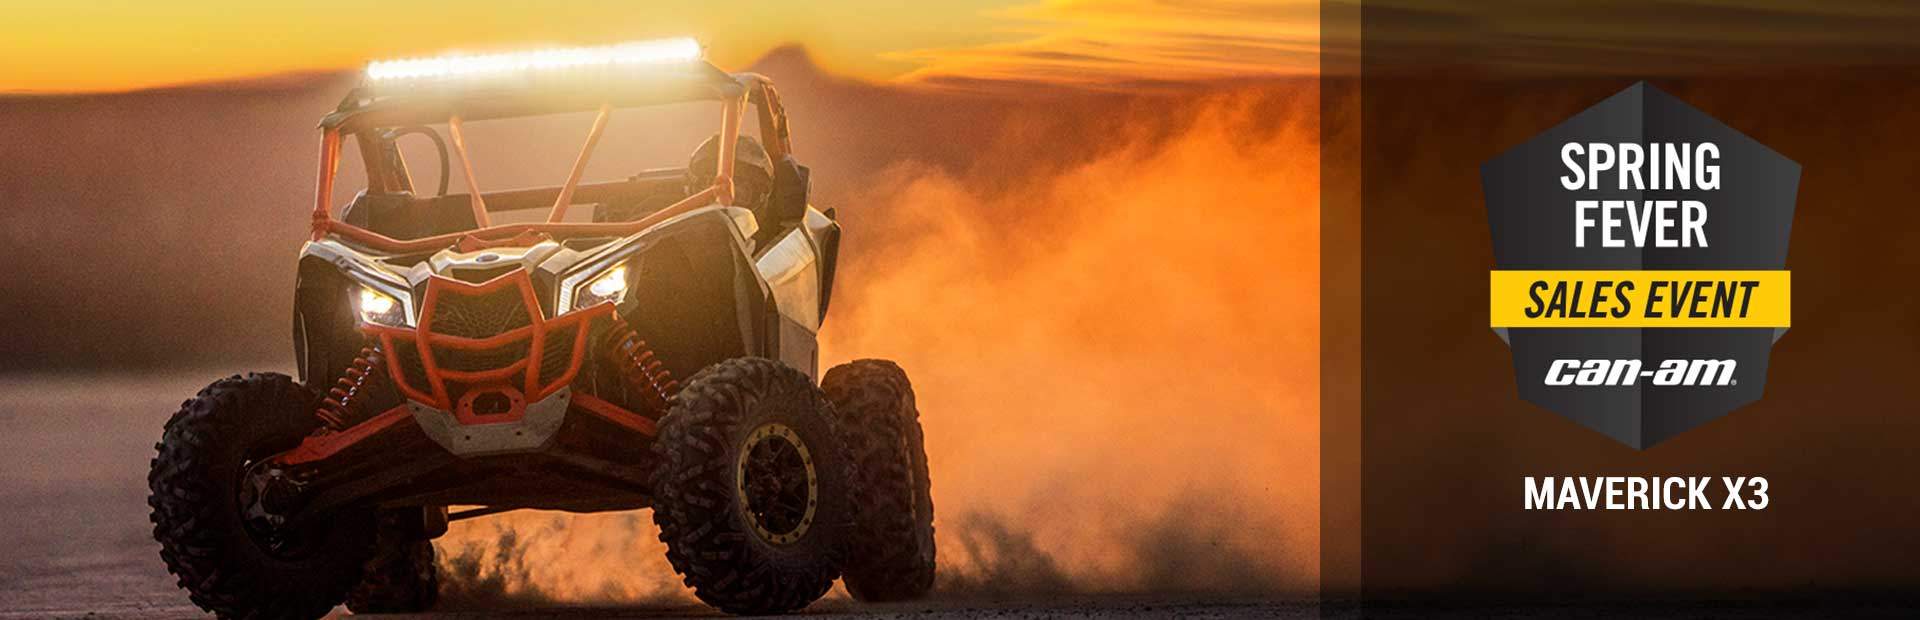 Spring Fever Sales Event (Maverick X3)